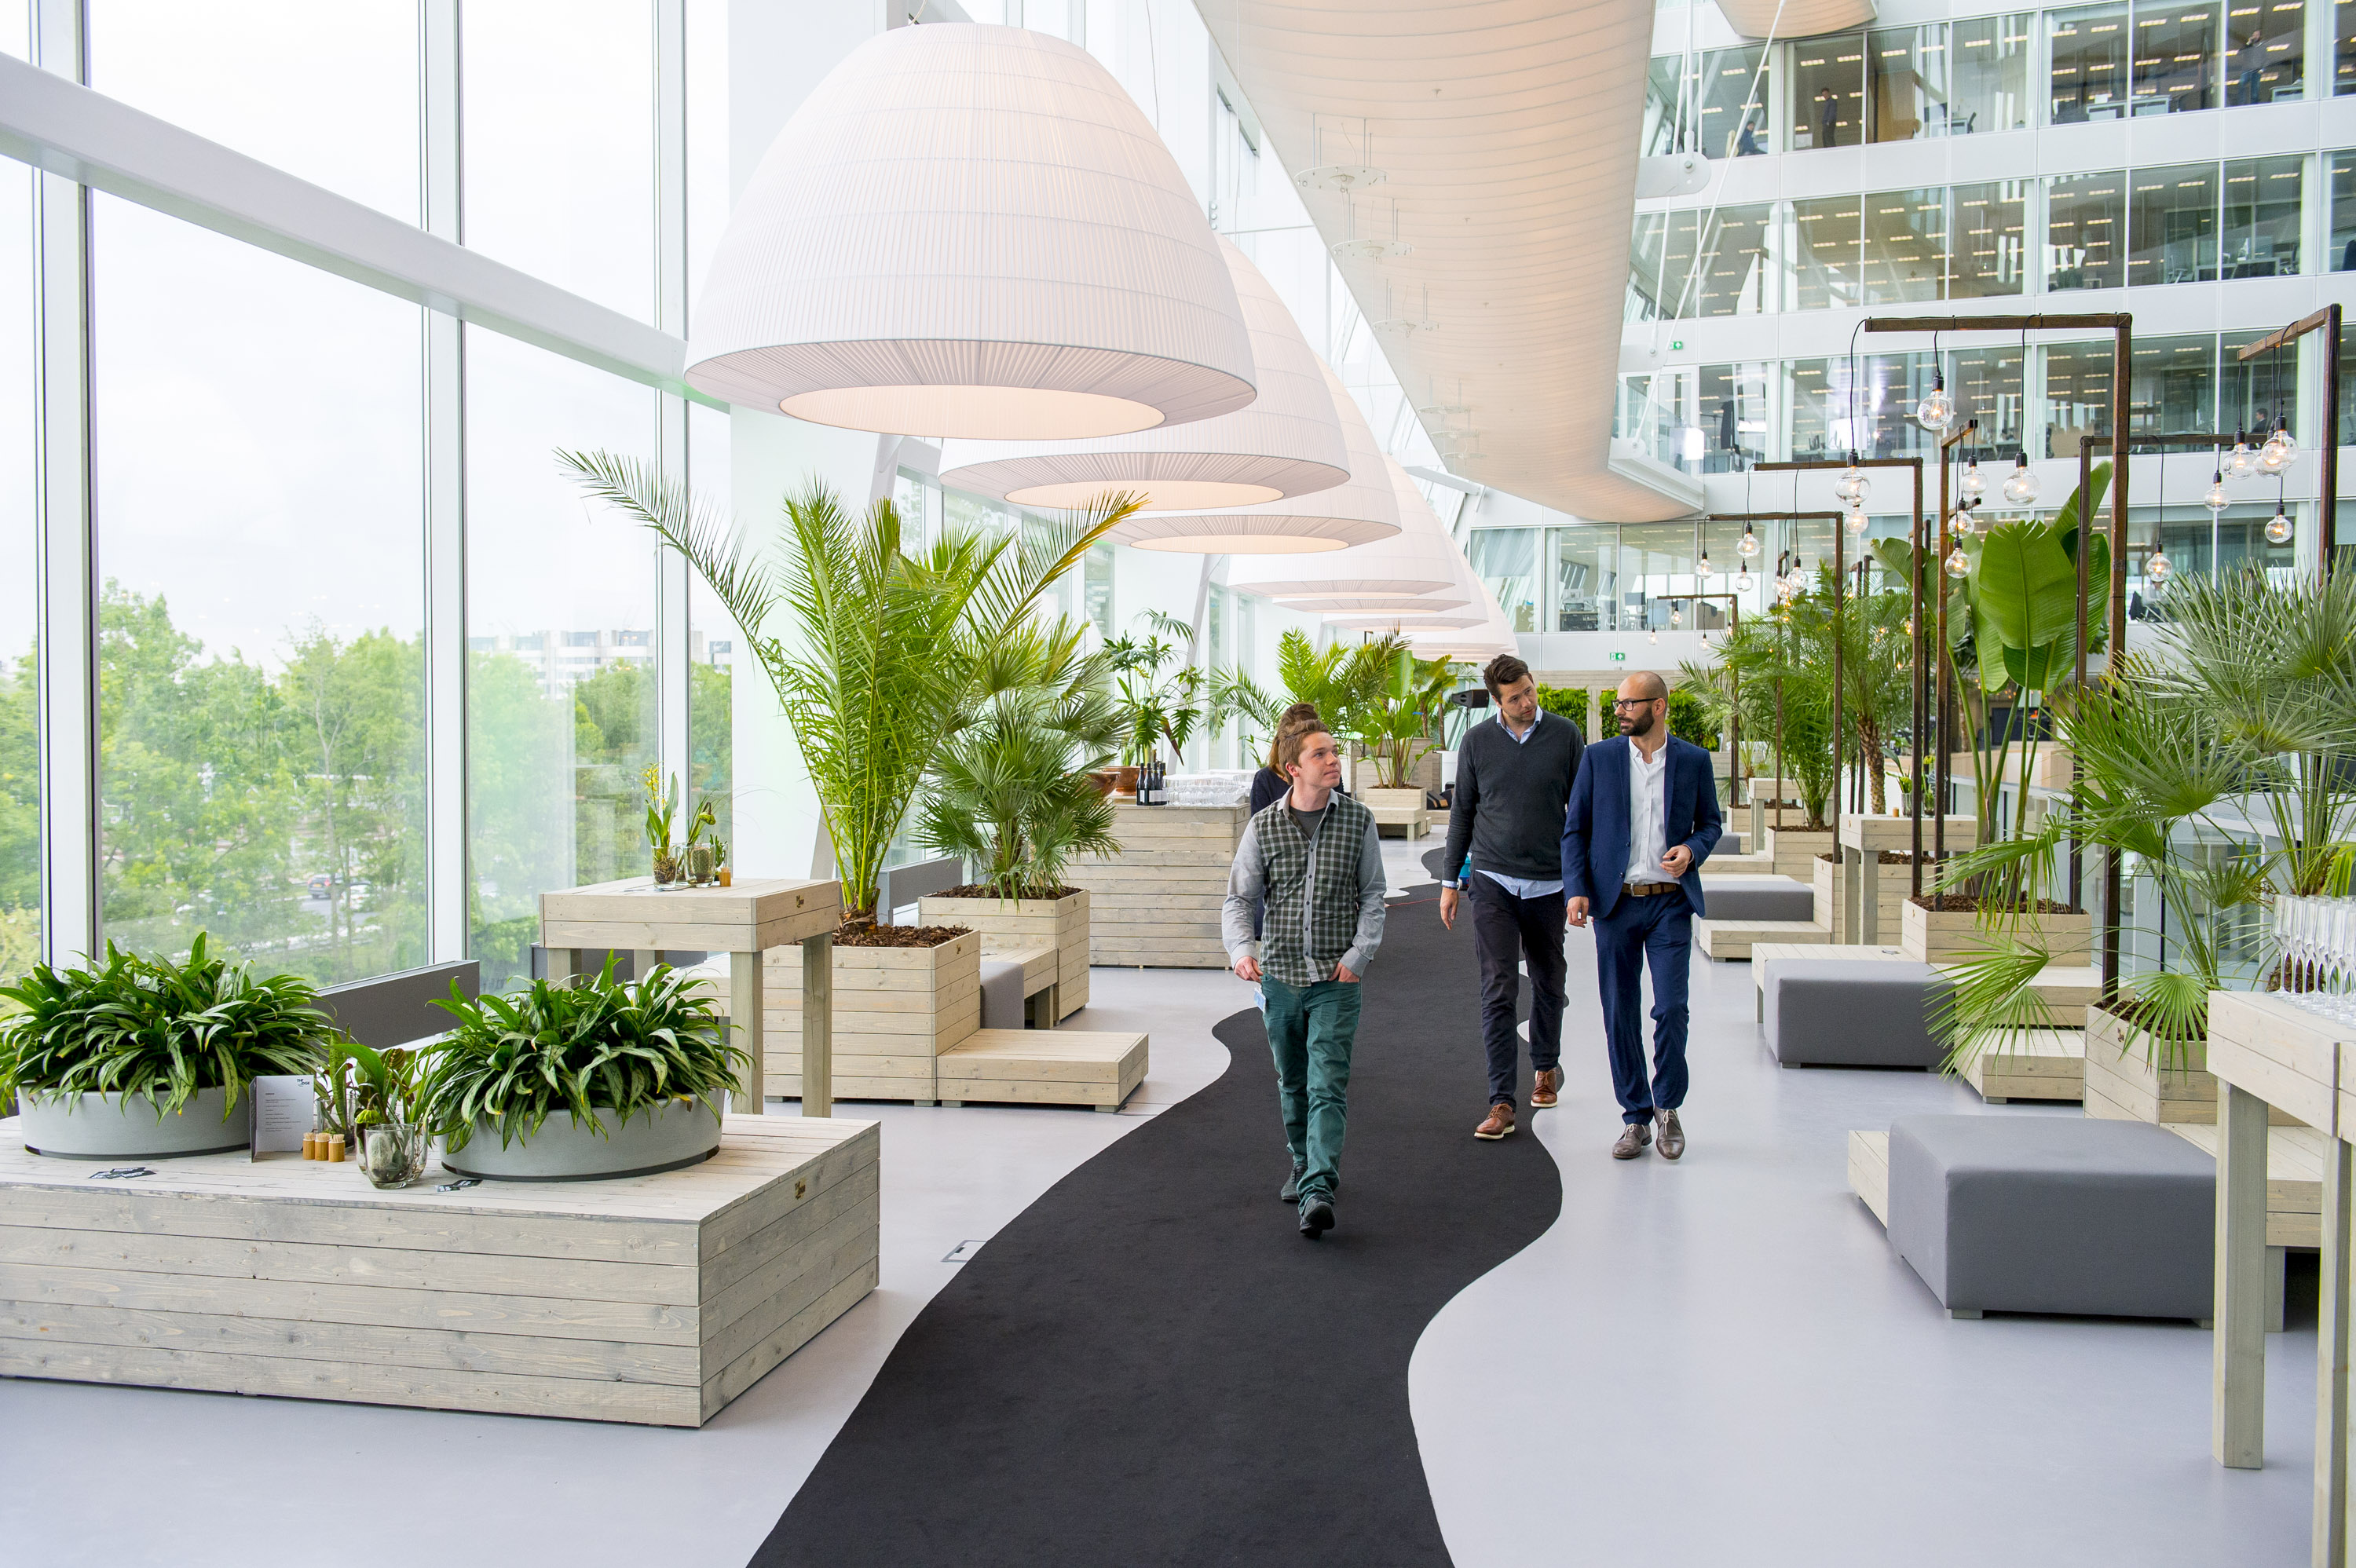 The Edge (Amsterdam) is the world's most sustainable office building in the world. OVG Real Estate, in partnership with Deloitte, opened the building earlier this year | Credits: gresb.co